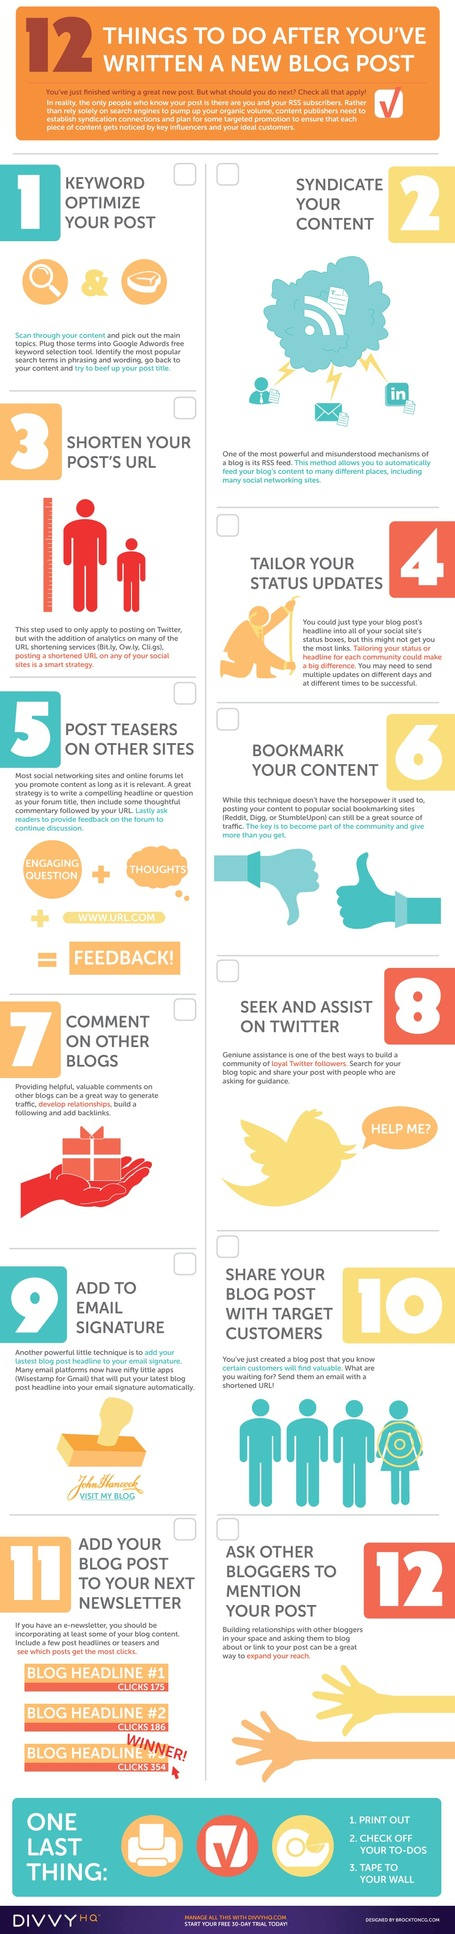 12 Things To Do After You've Published a New Blog Post | Infographic | E-MOOC | Scoop.it